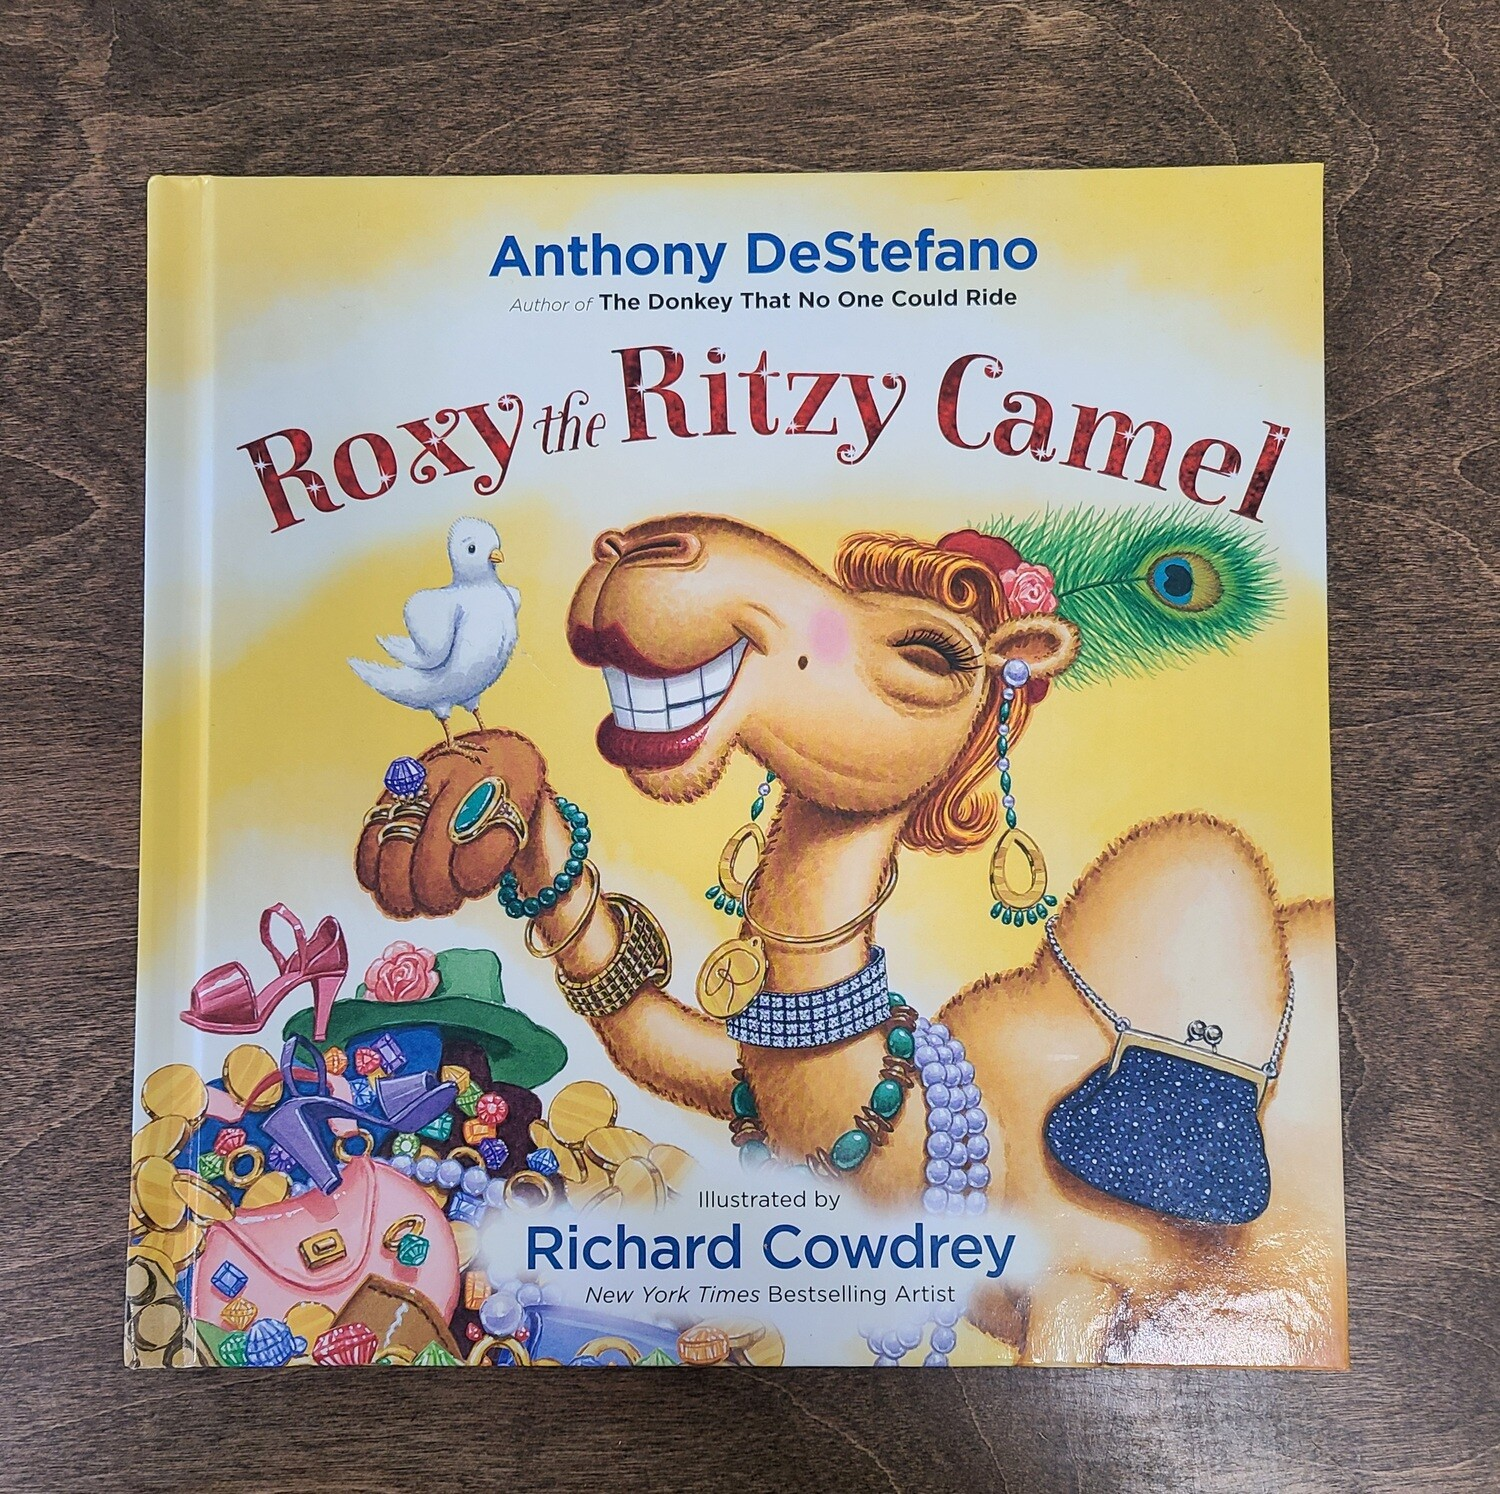 Roxy the Ritzy Camel by Anthony DeStefano and Richard Cowdrey